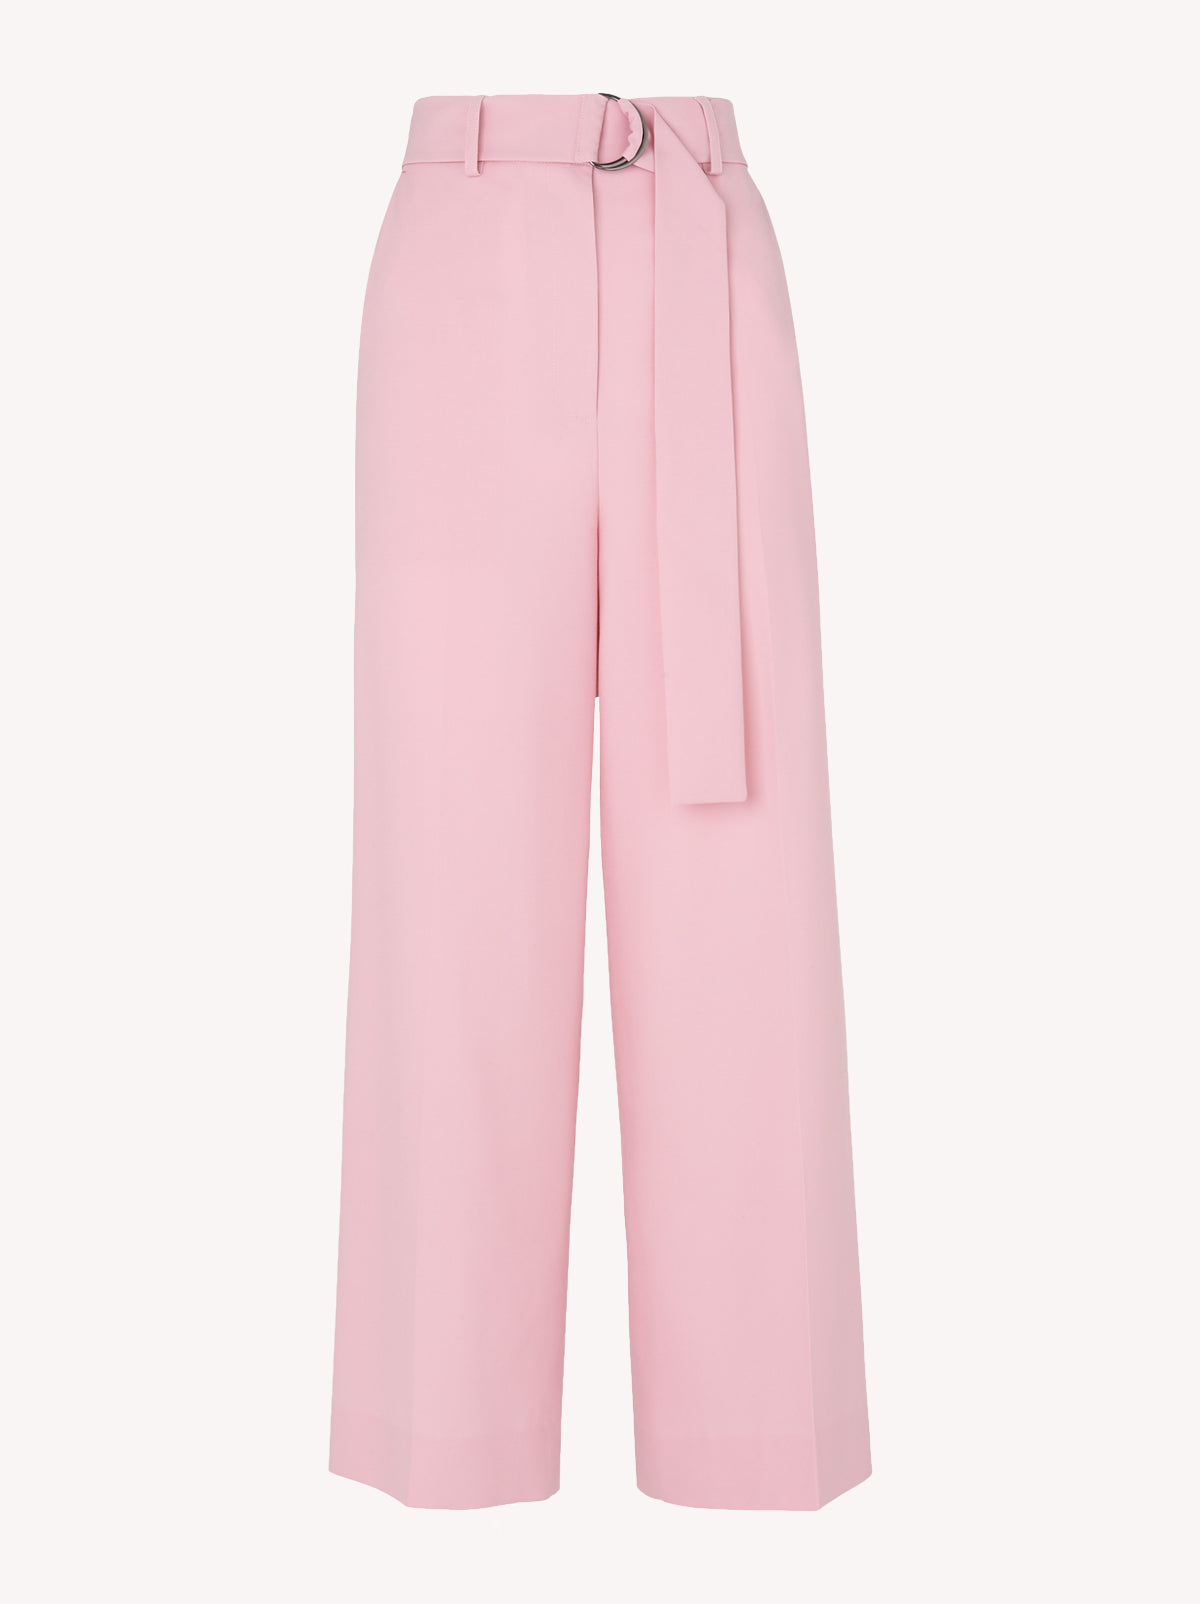 Lynn Pink Tailored Trousers by KITRI Studio